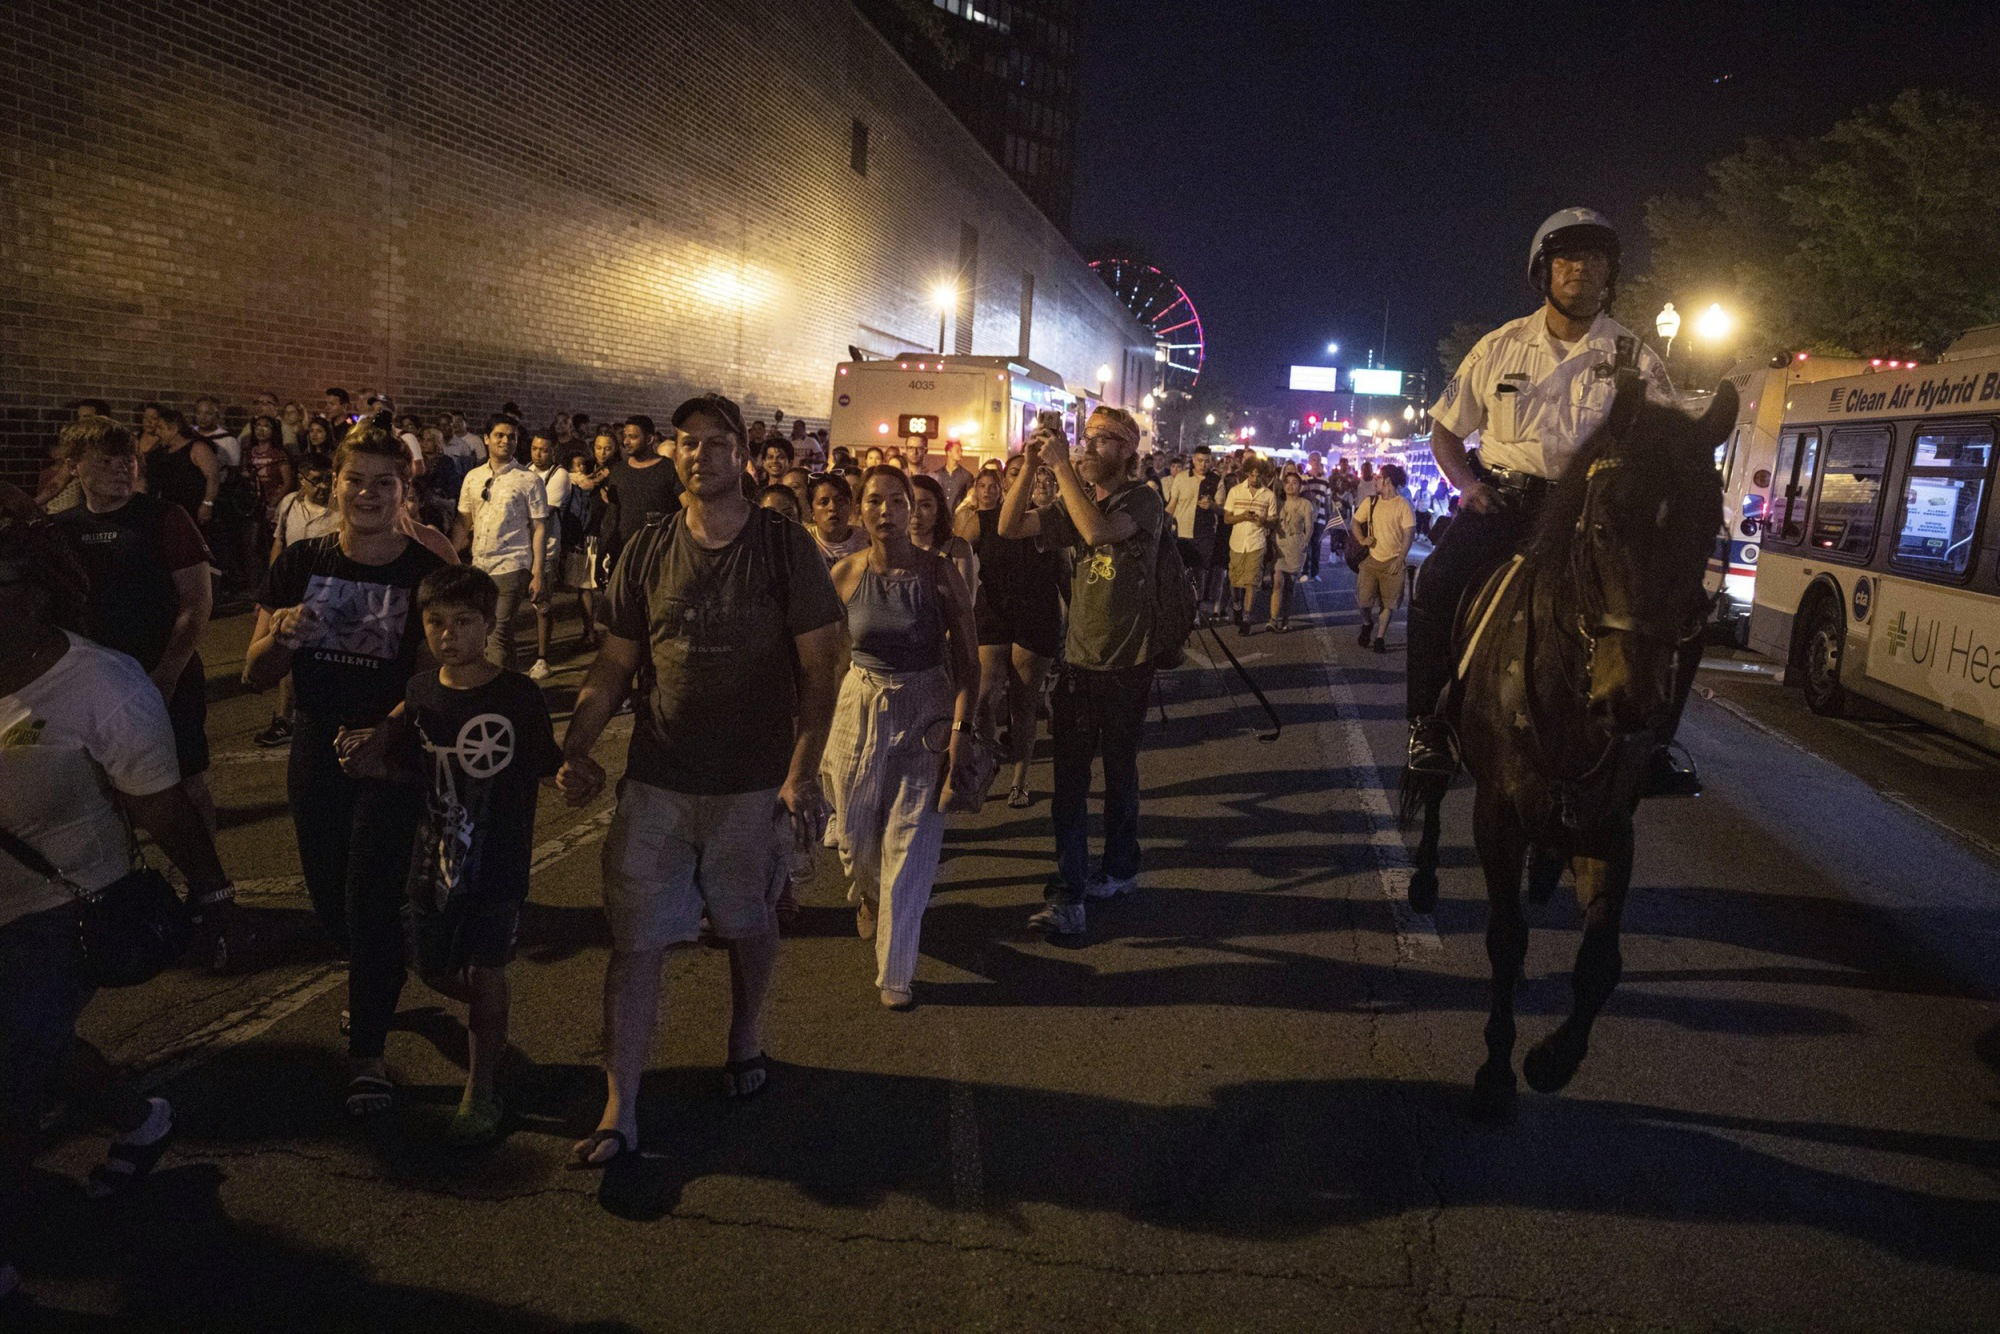 Warning about possible shooter sparked Navy Pier stampede, Chicago police say